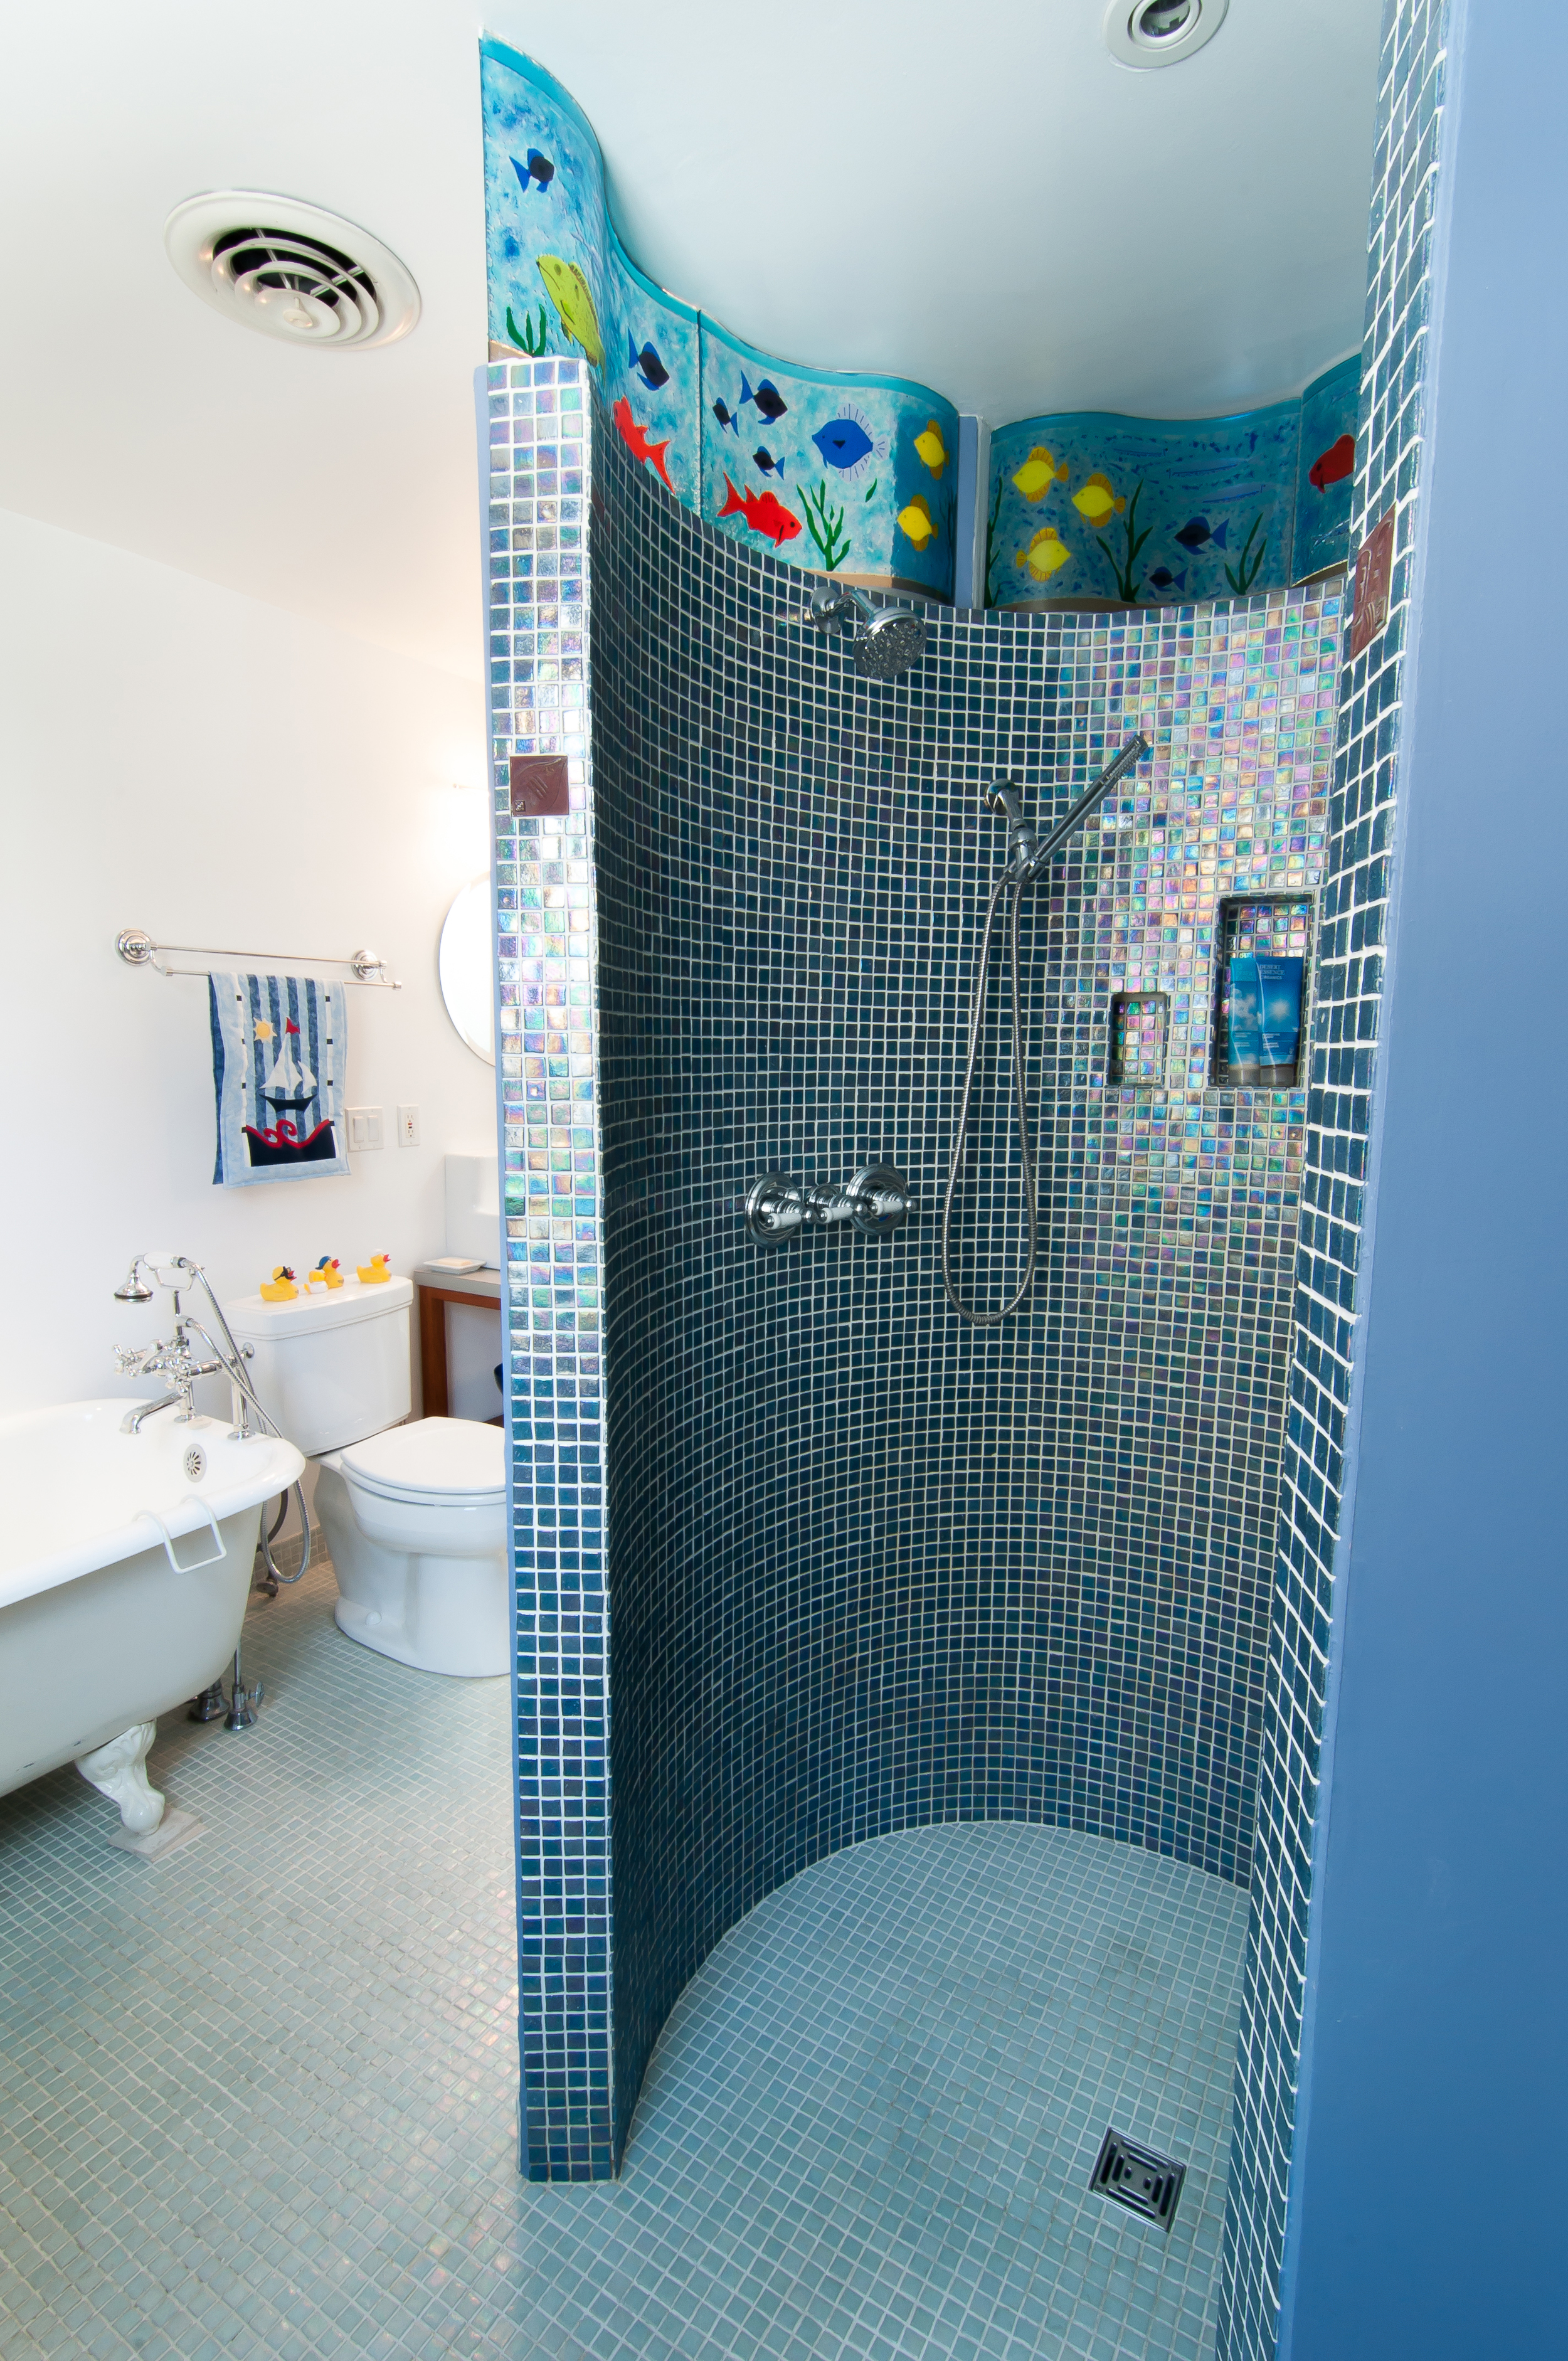 Custom tile work and mosaic glass in the walk out shower.